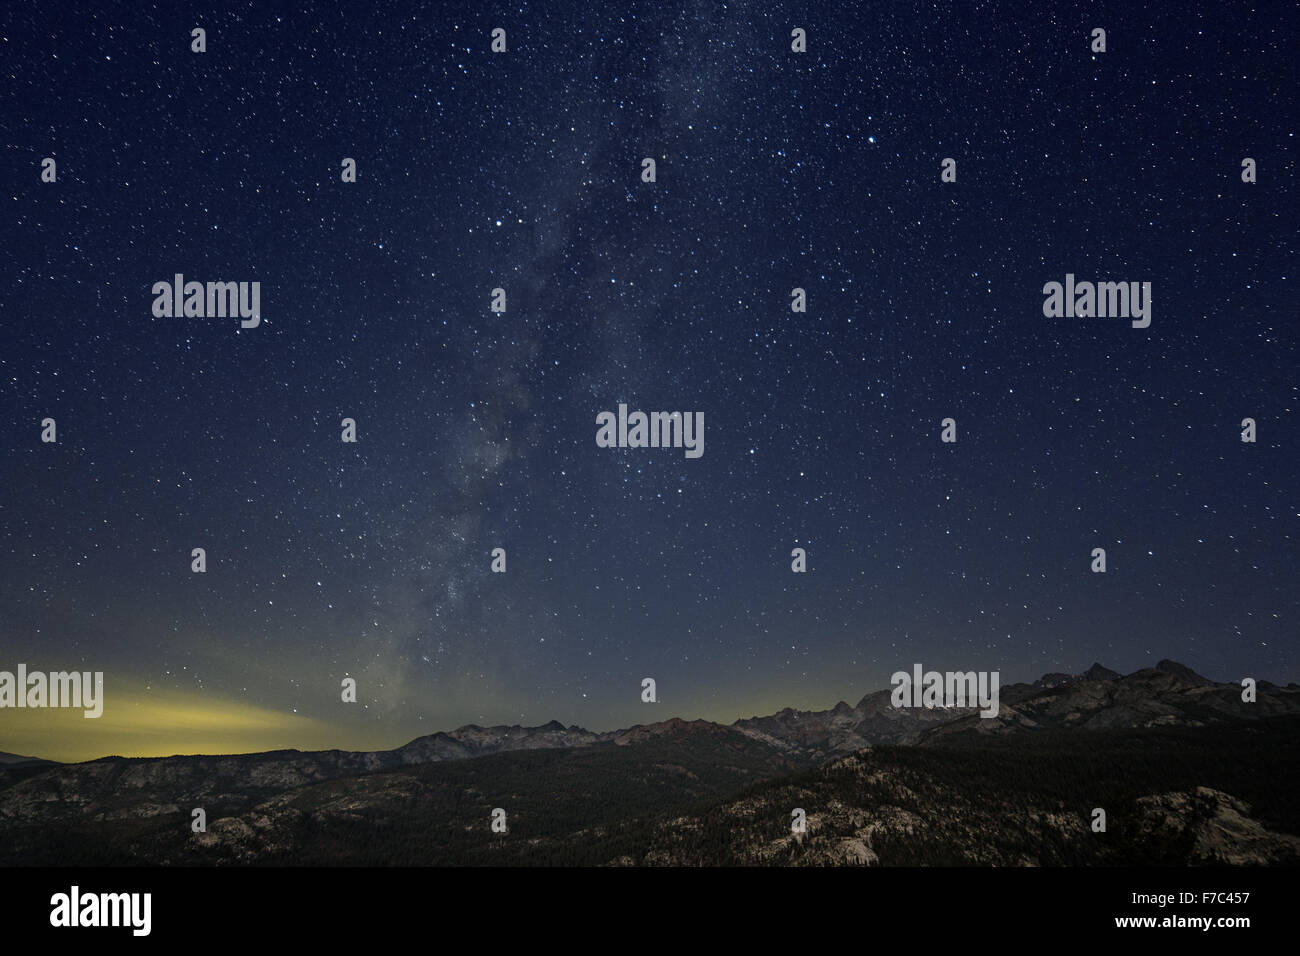 Nightscape with the Milky Way in display over the Ritter Range of the Sierra Nevada Mountains. - Stock Image